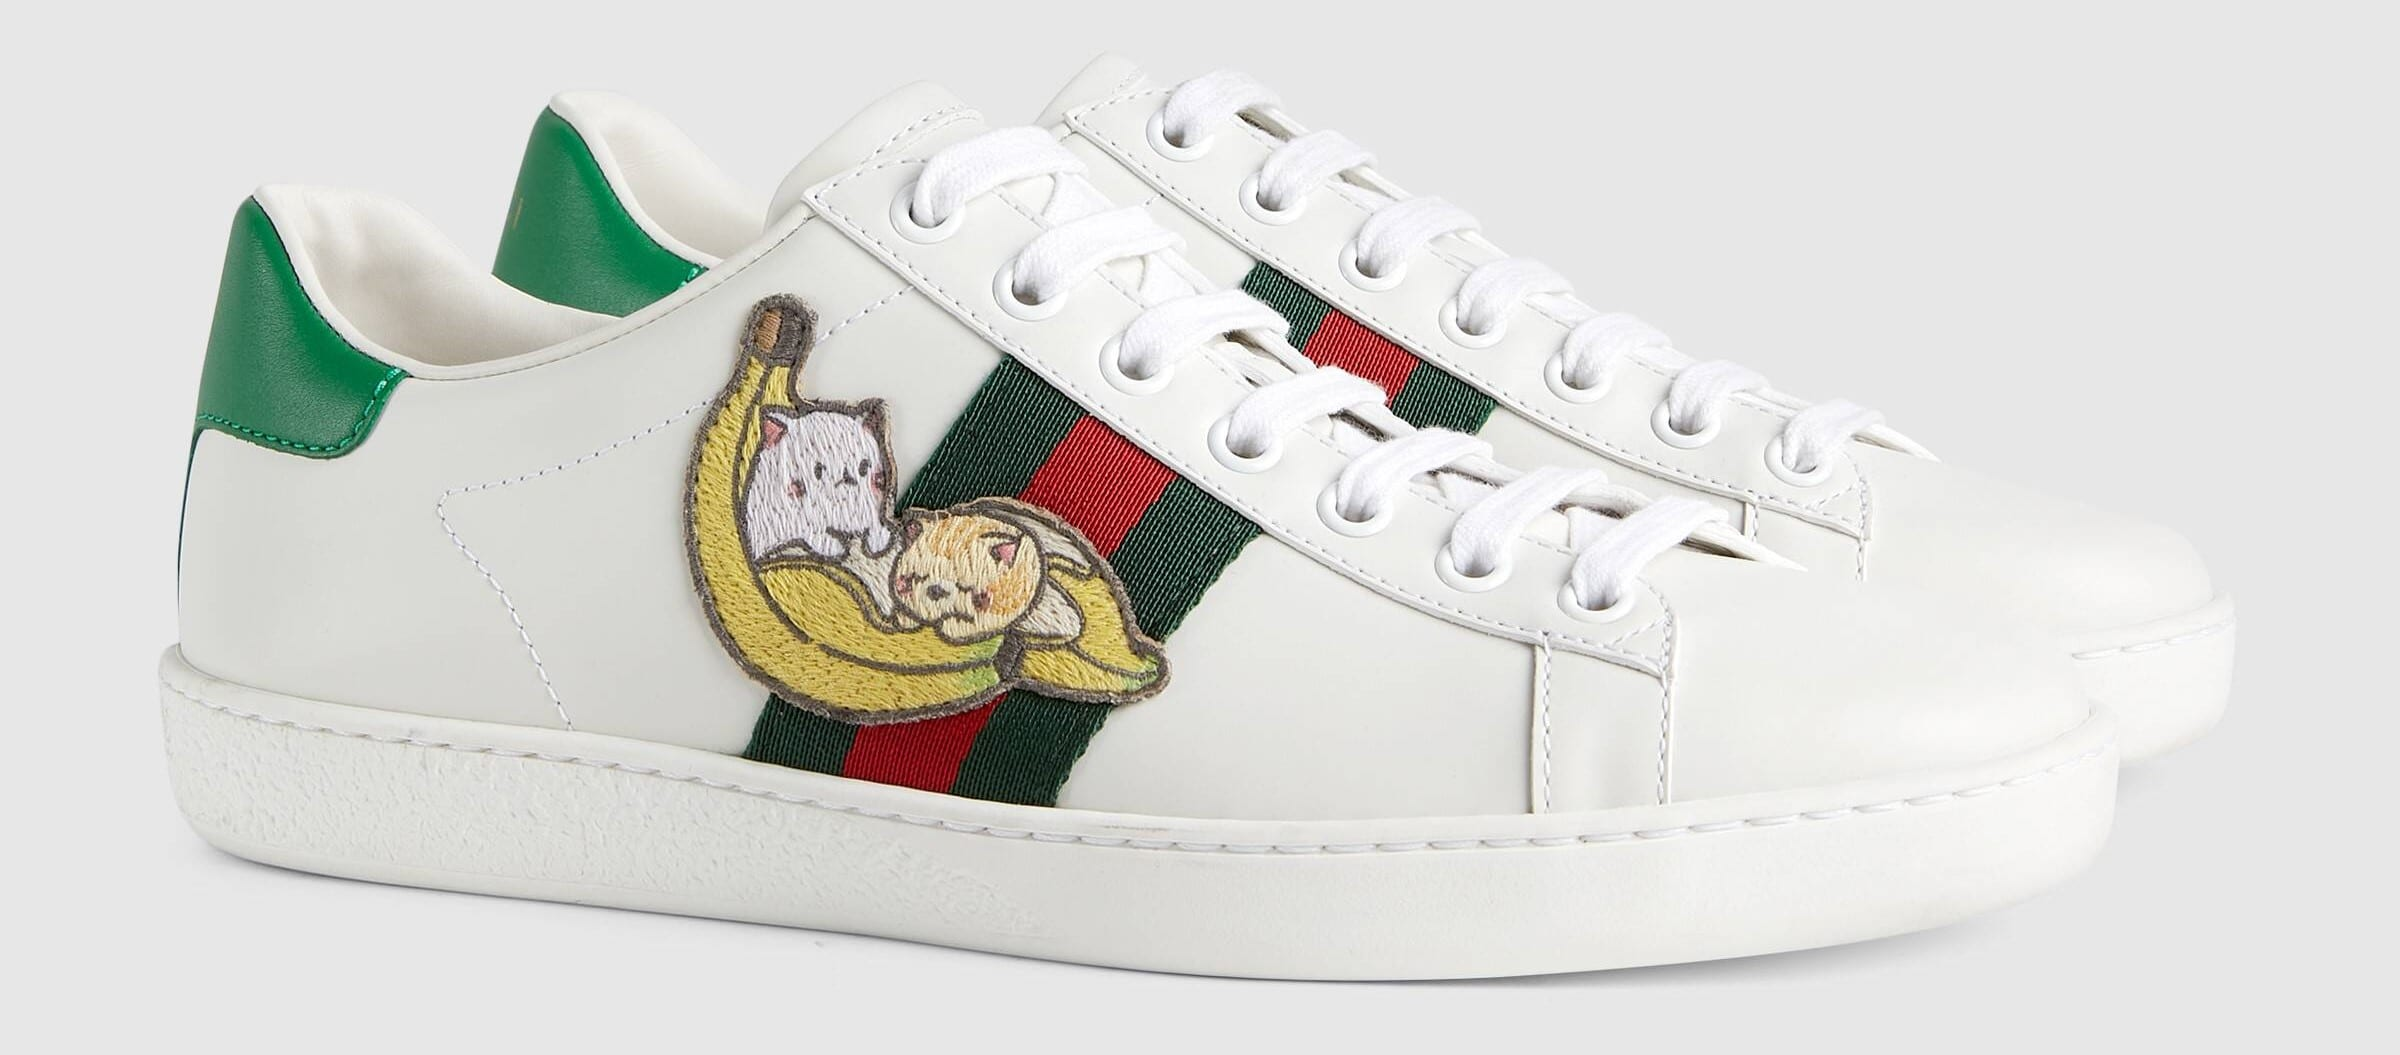 Gucci and Crunchyroll team up for a Bananya capsule collection 21